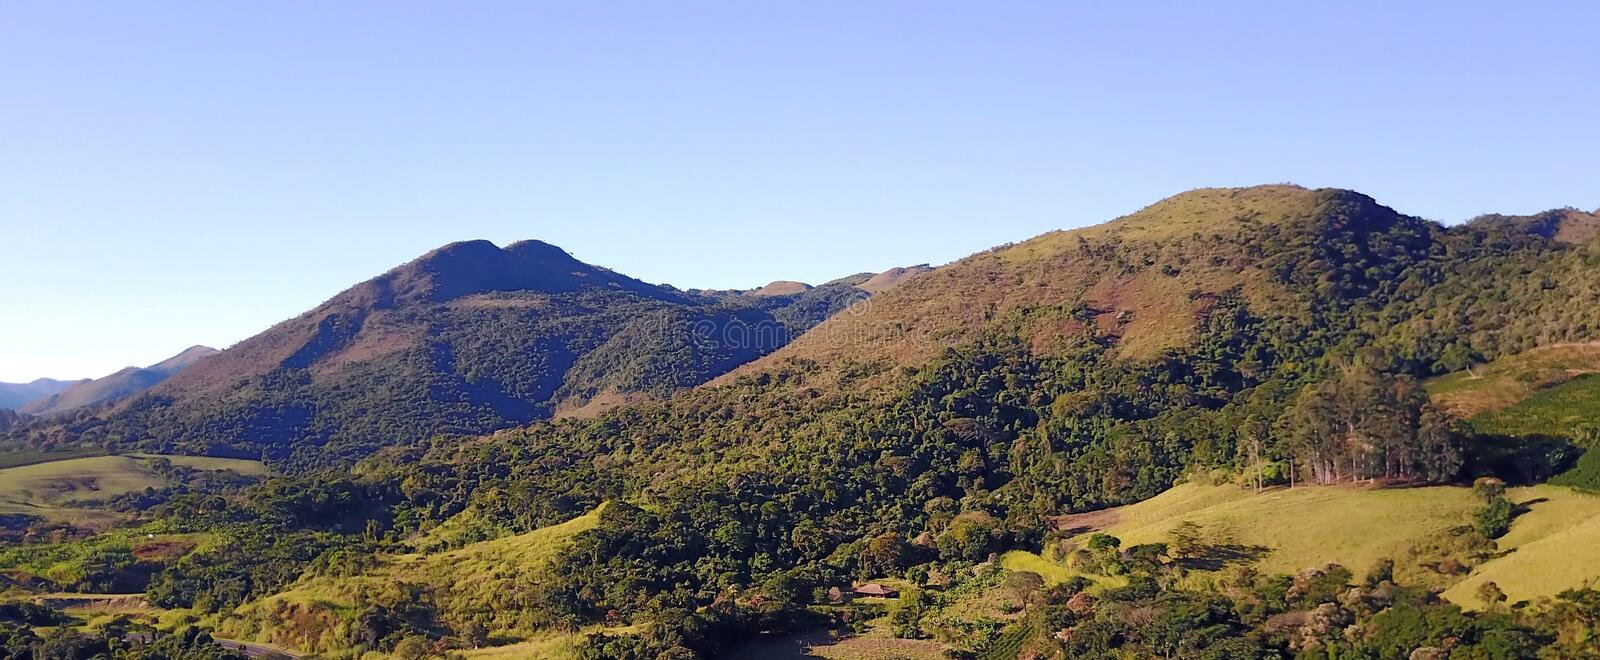 The Mantiqueira mountain range royalty free stock images